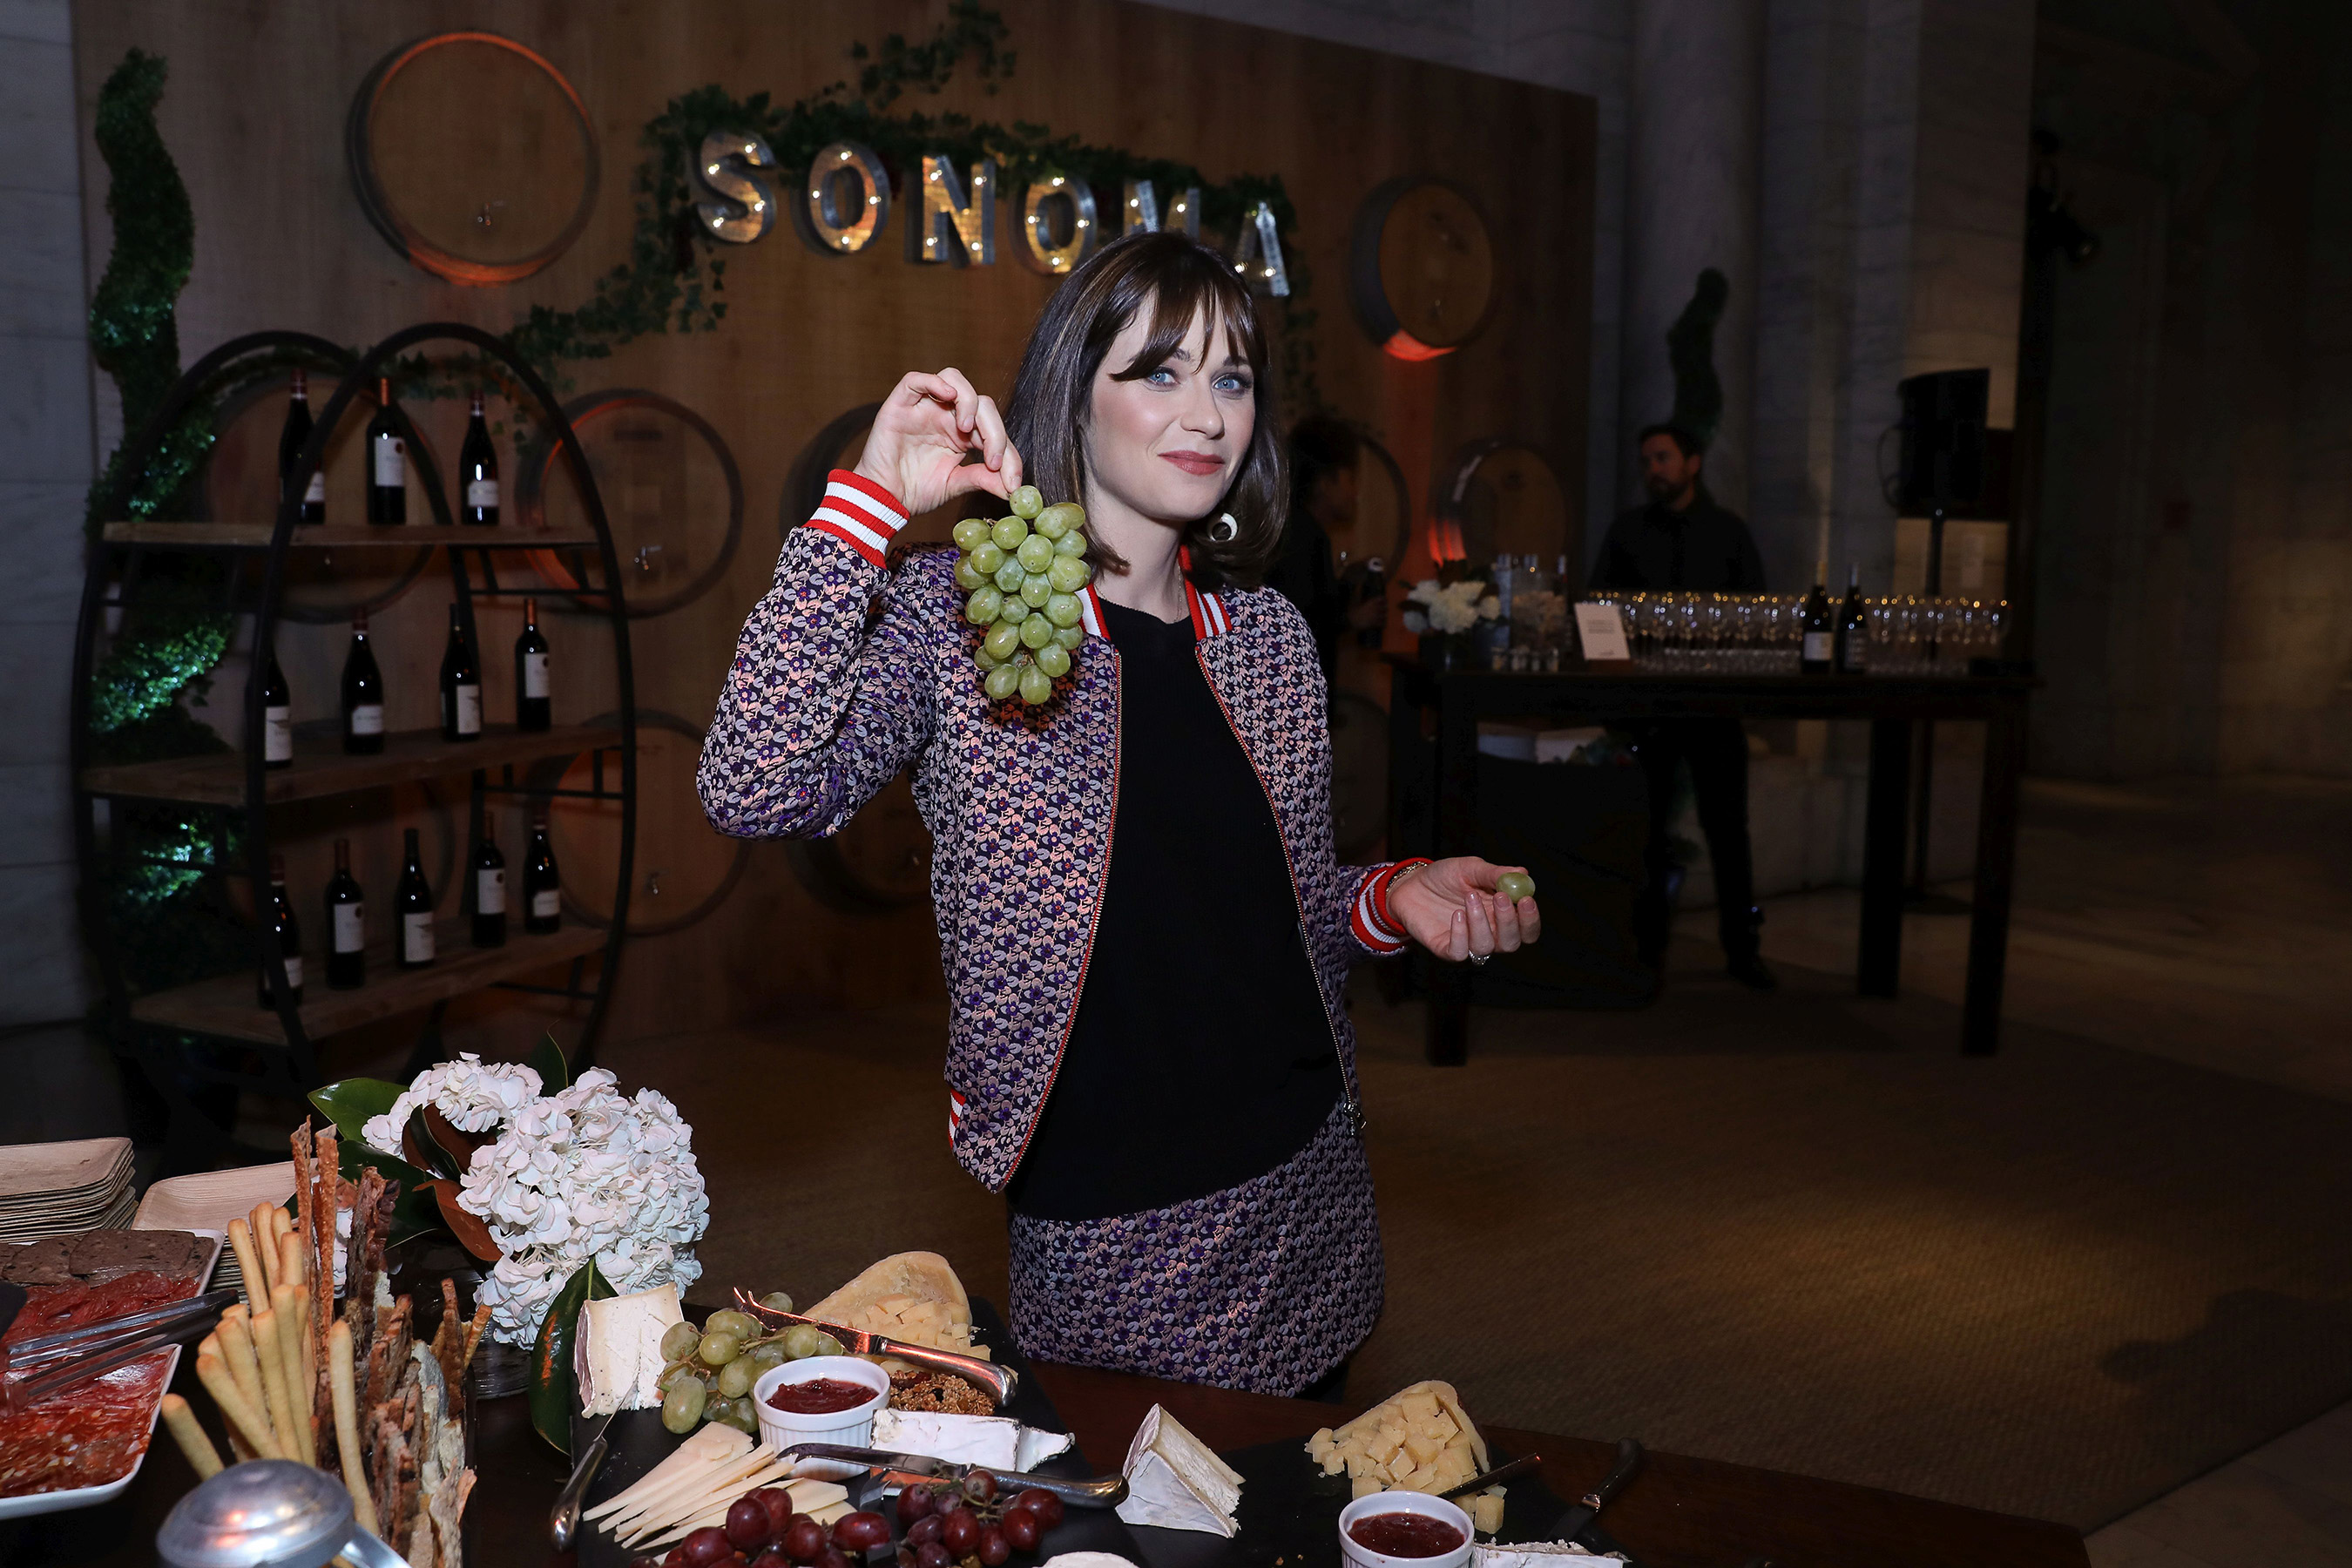 Zooey Deschanel shares her passion for travel at the Sonoma pop-up experience during the launch event at Capital One's Purpose Project for the Purpose Project(SM) by Capital One® on Wednesday, October 24, 2018 in New York.(Mark Von Holden/AP Images for Capital One)